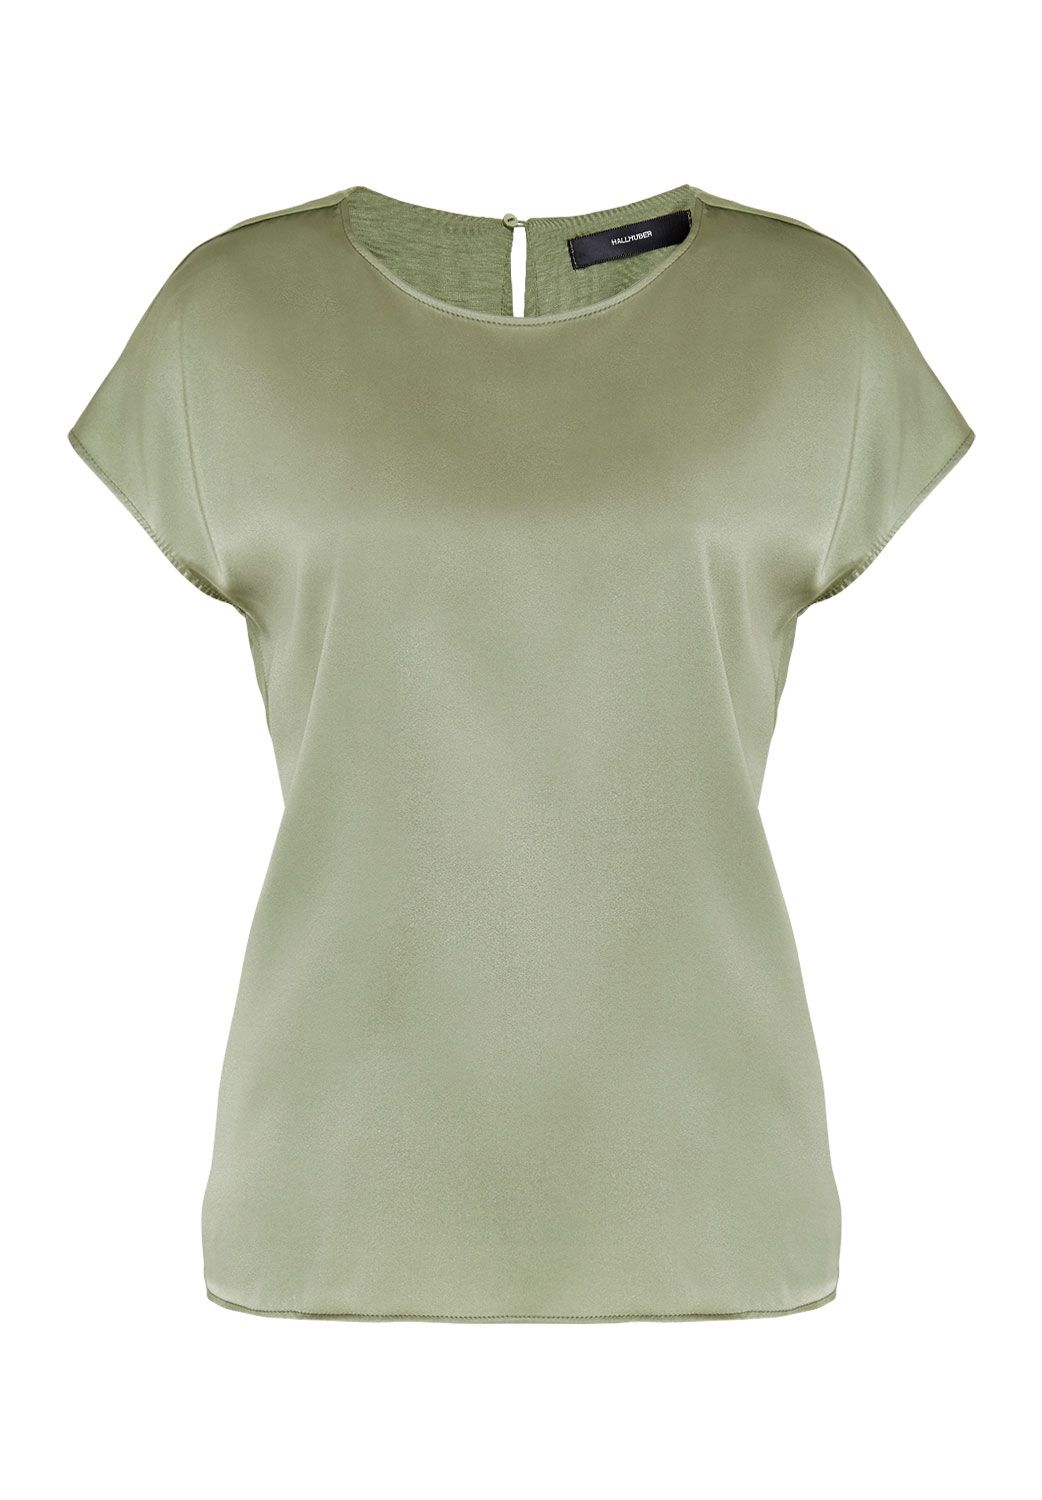 Hallhuber Oversized top with gathered neckline, Sage